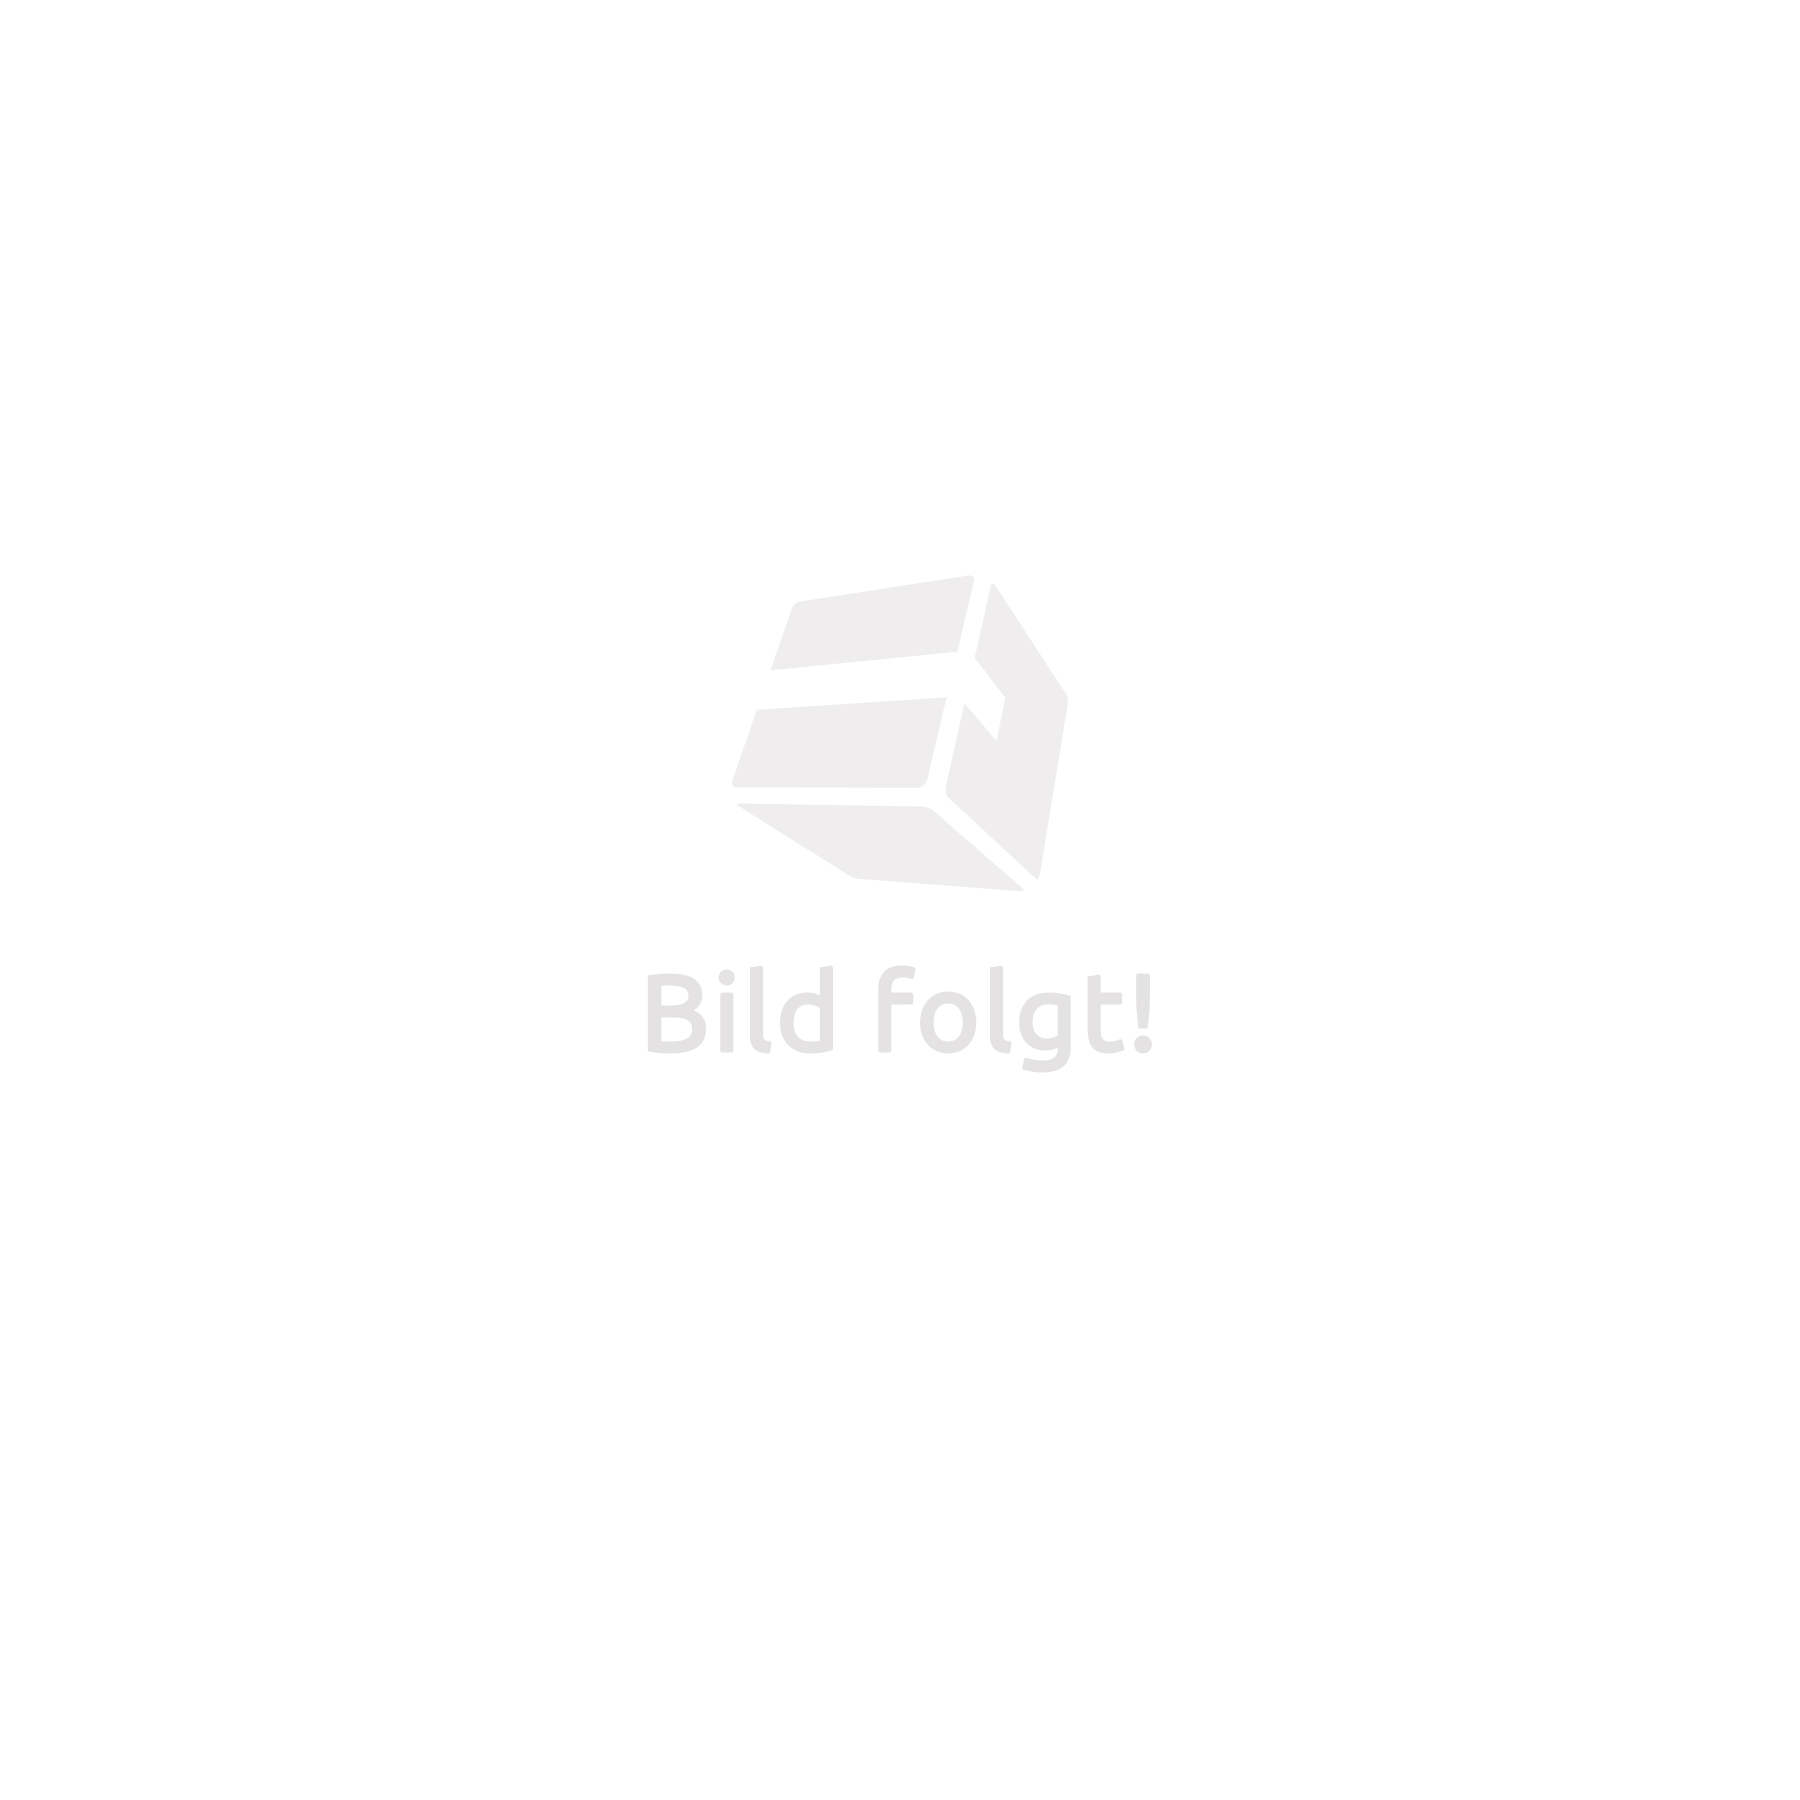 Massage table 2-zone Freddi 5 cm padding + bag black